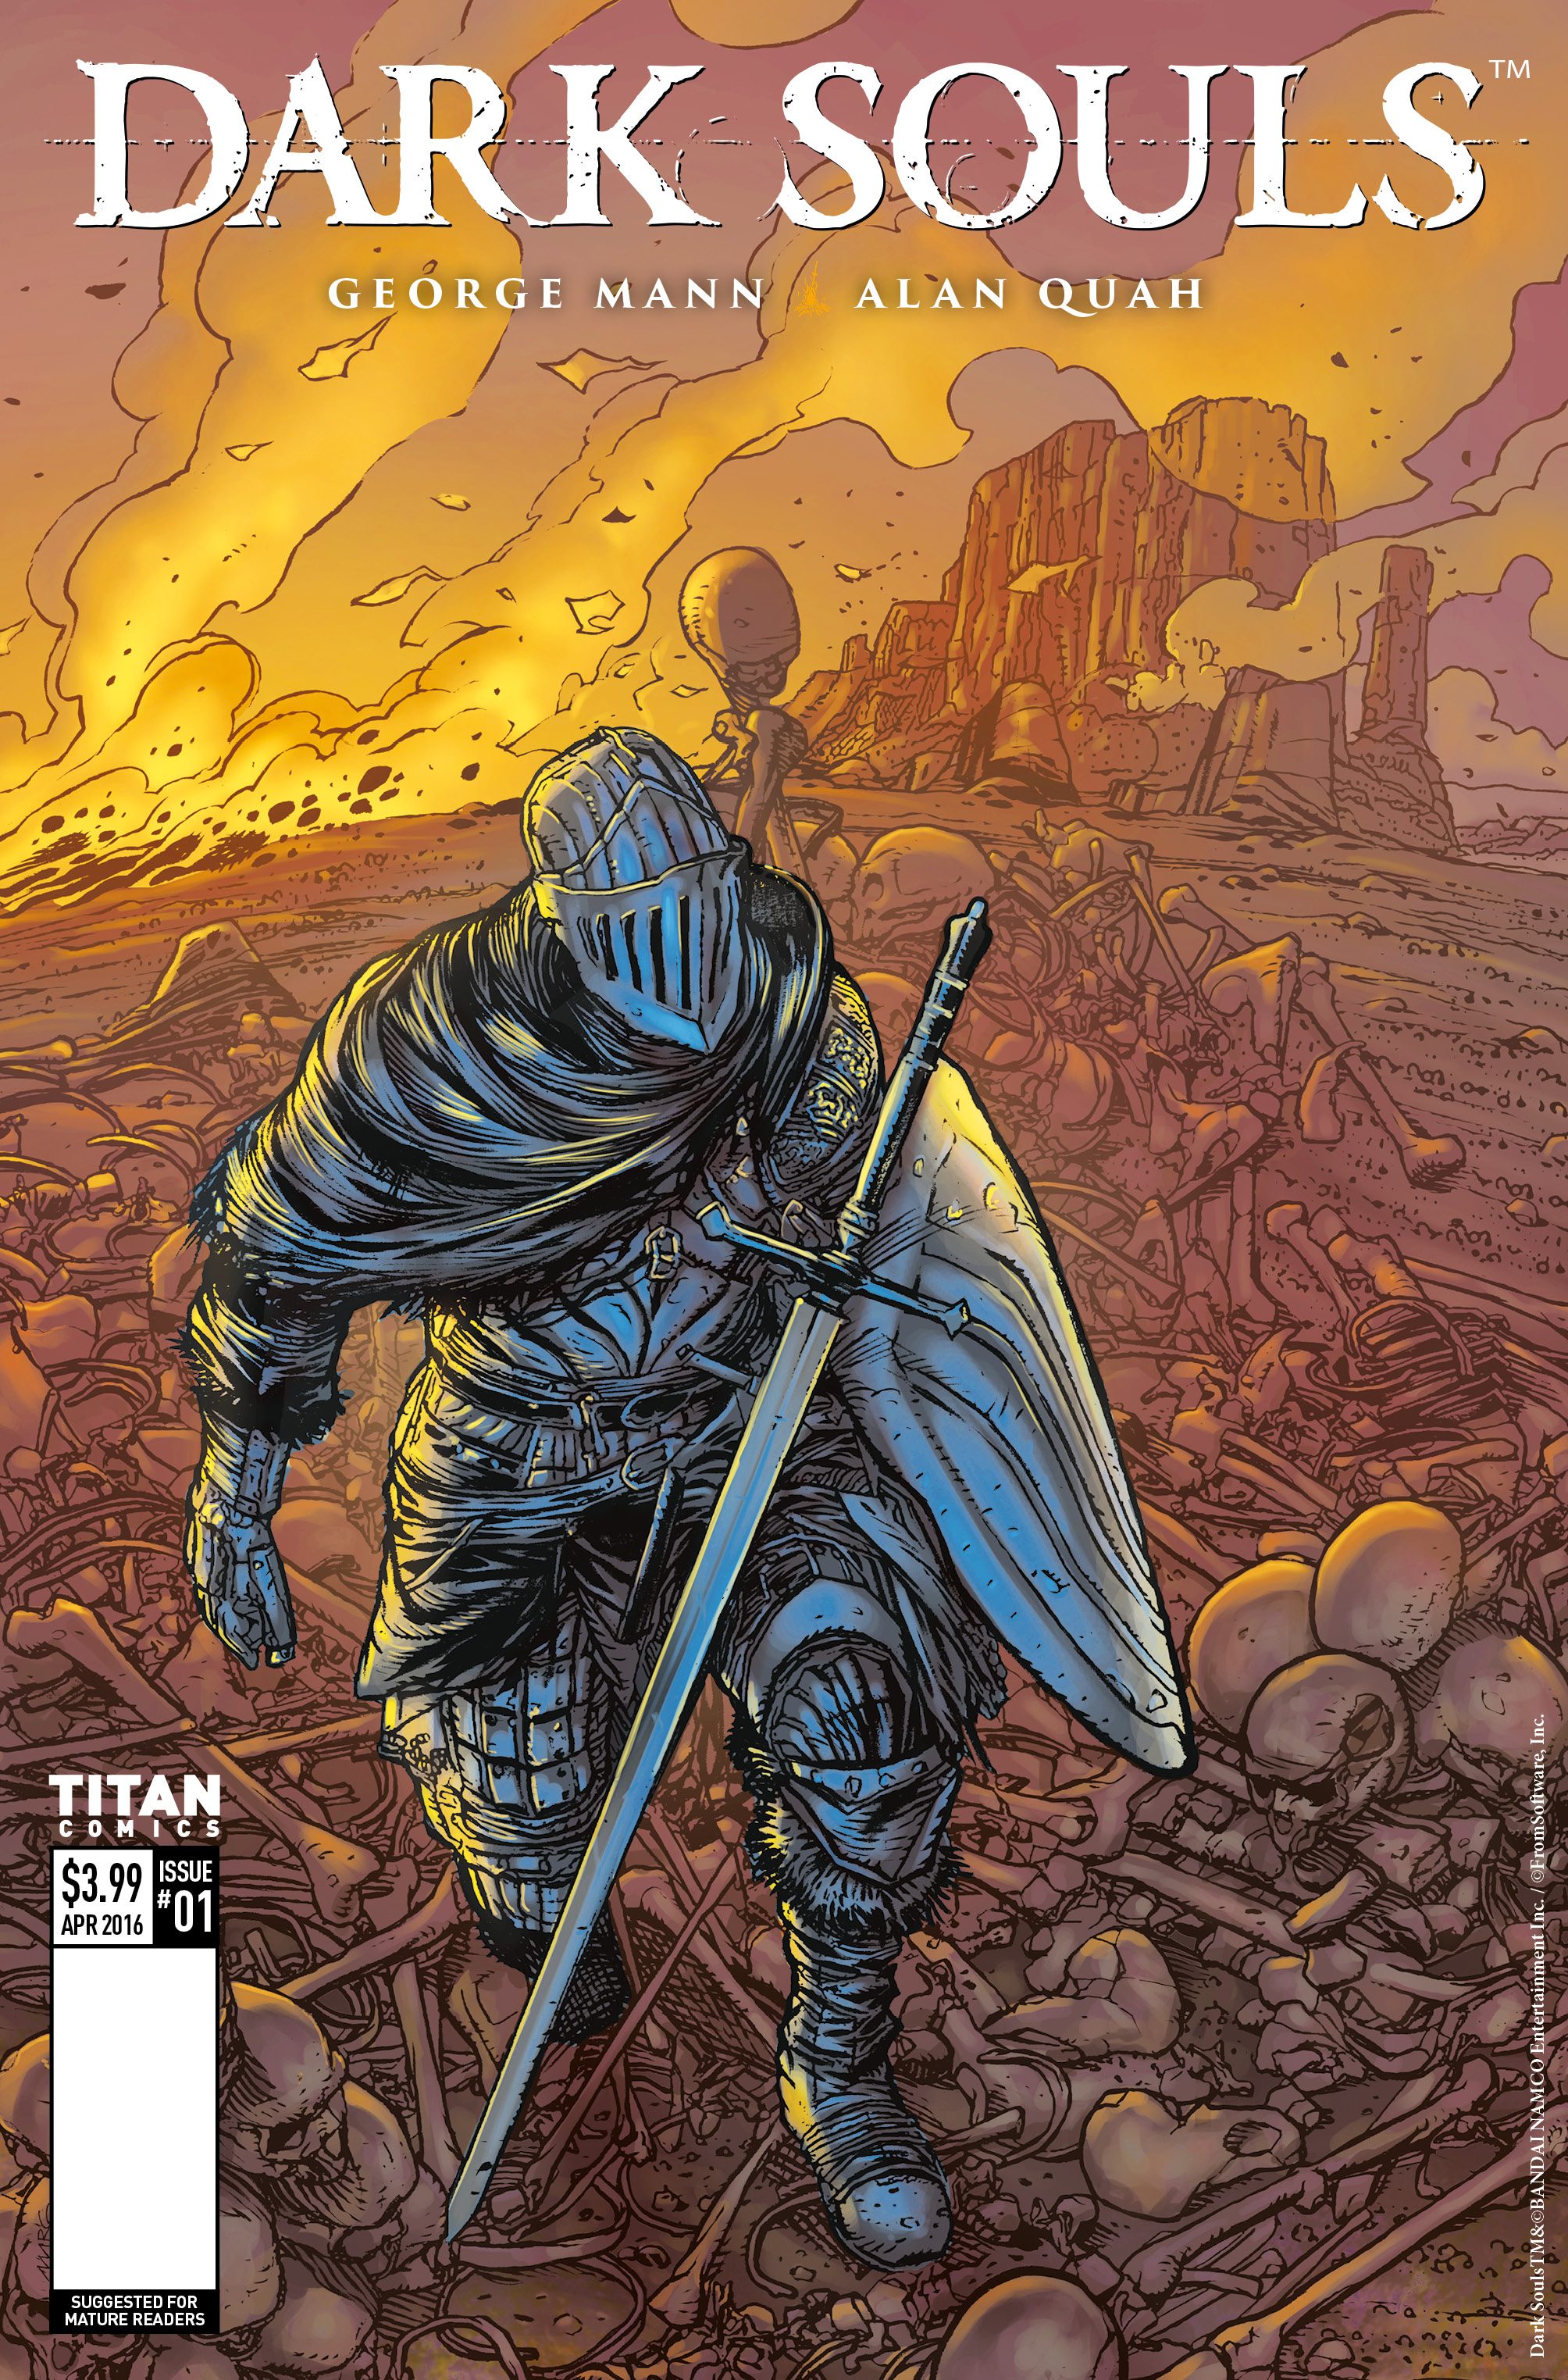 DarkSouls1_Previews_COVERD